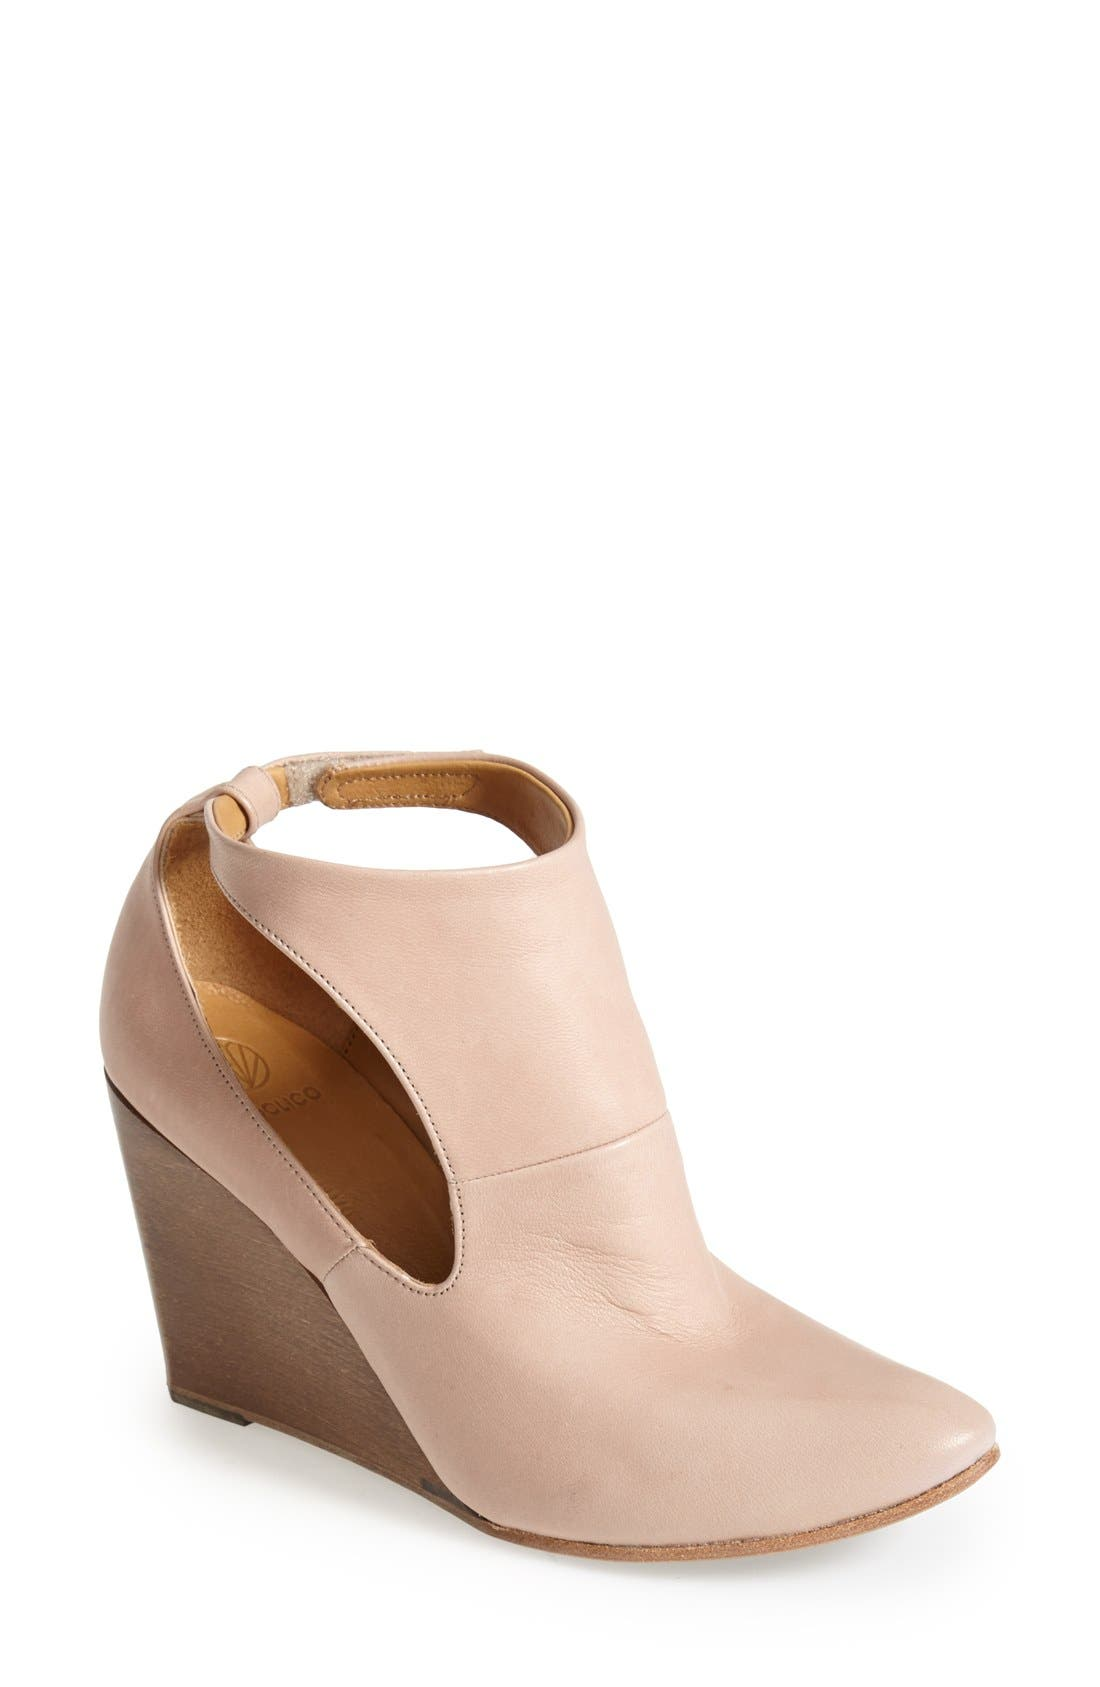 Alternate Image 1 Selected - Coclico 'Jory' Cutout Leather Bootie (Women)